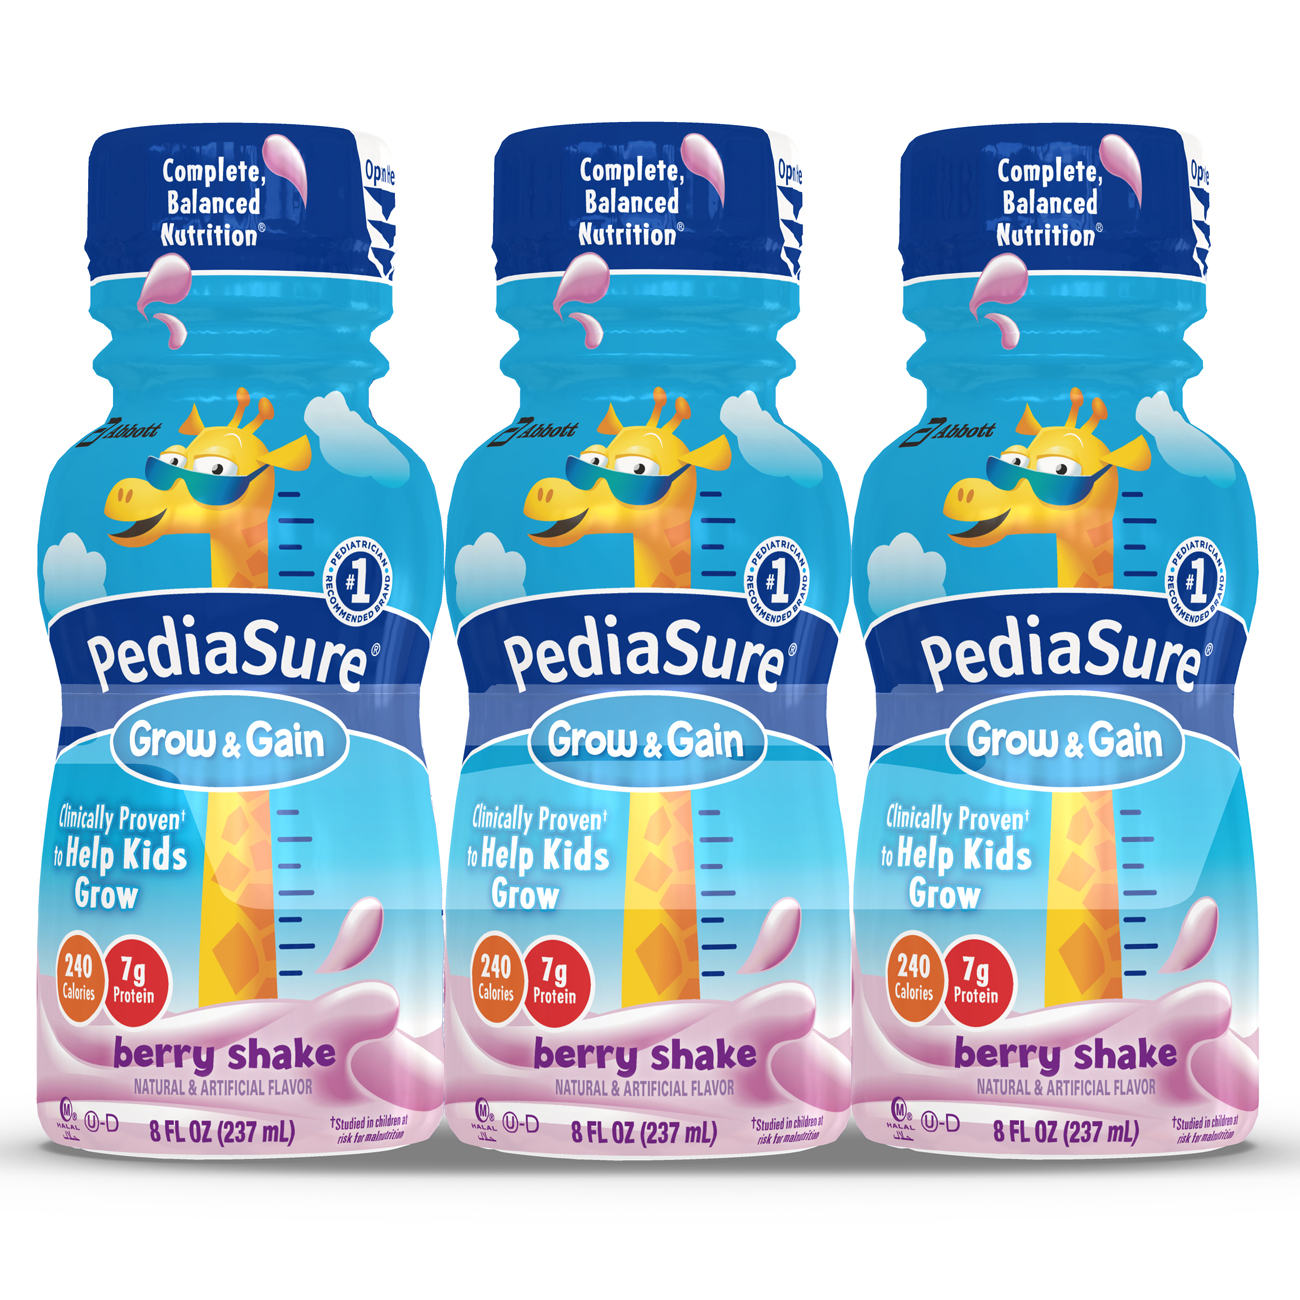 PediaSure Grow & Gain Nutrition Shake For Kids, Berry, 8 fl oz (Pack of 6)